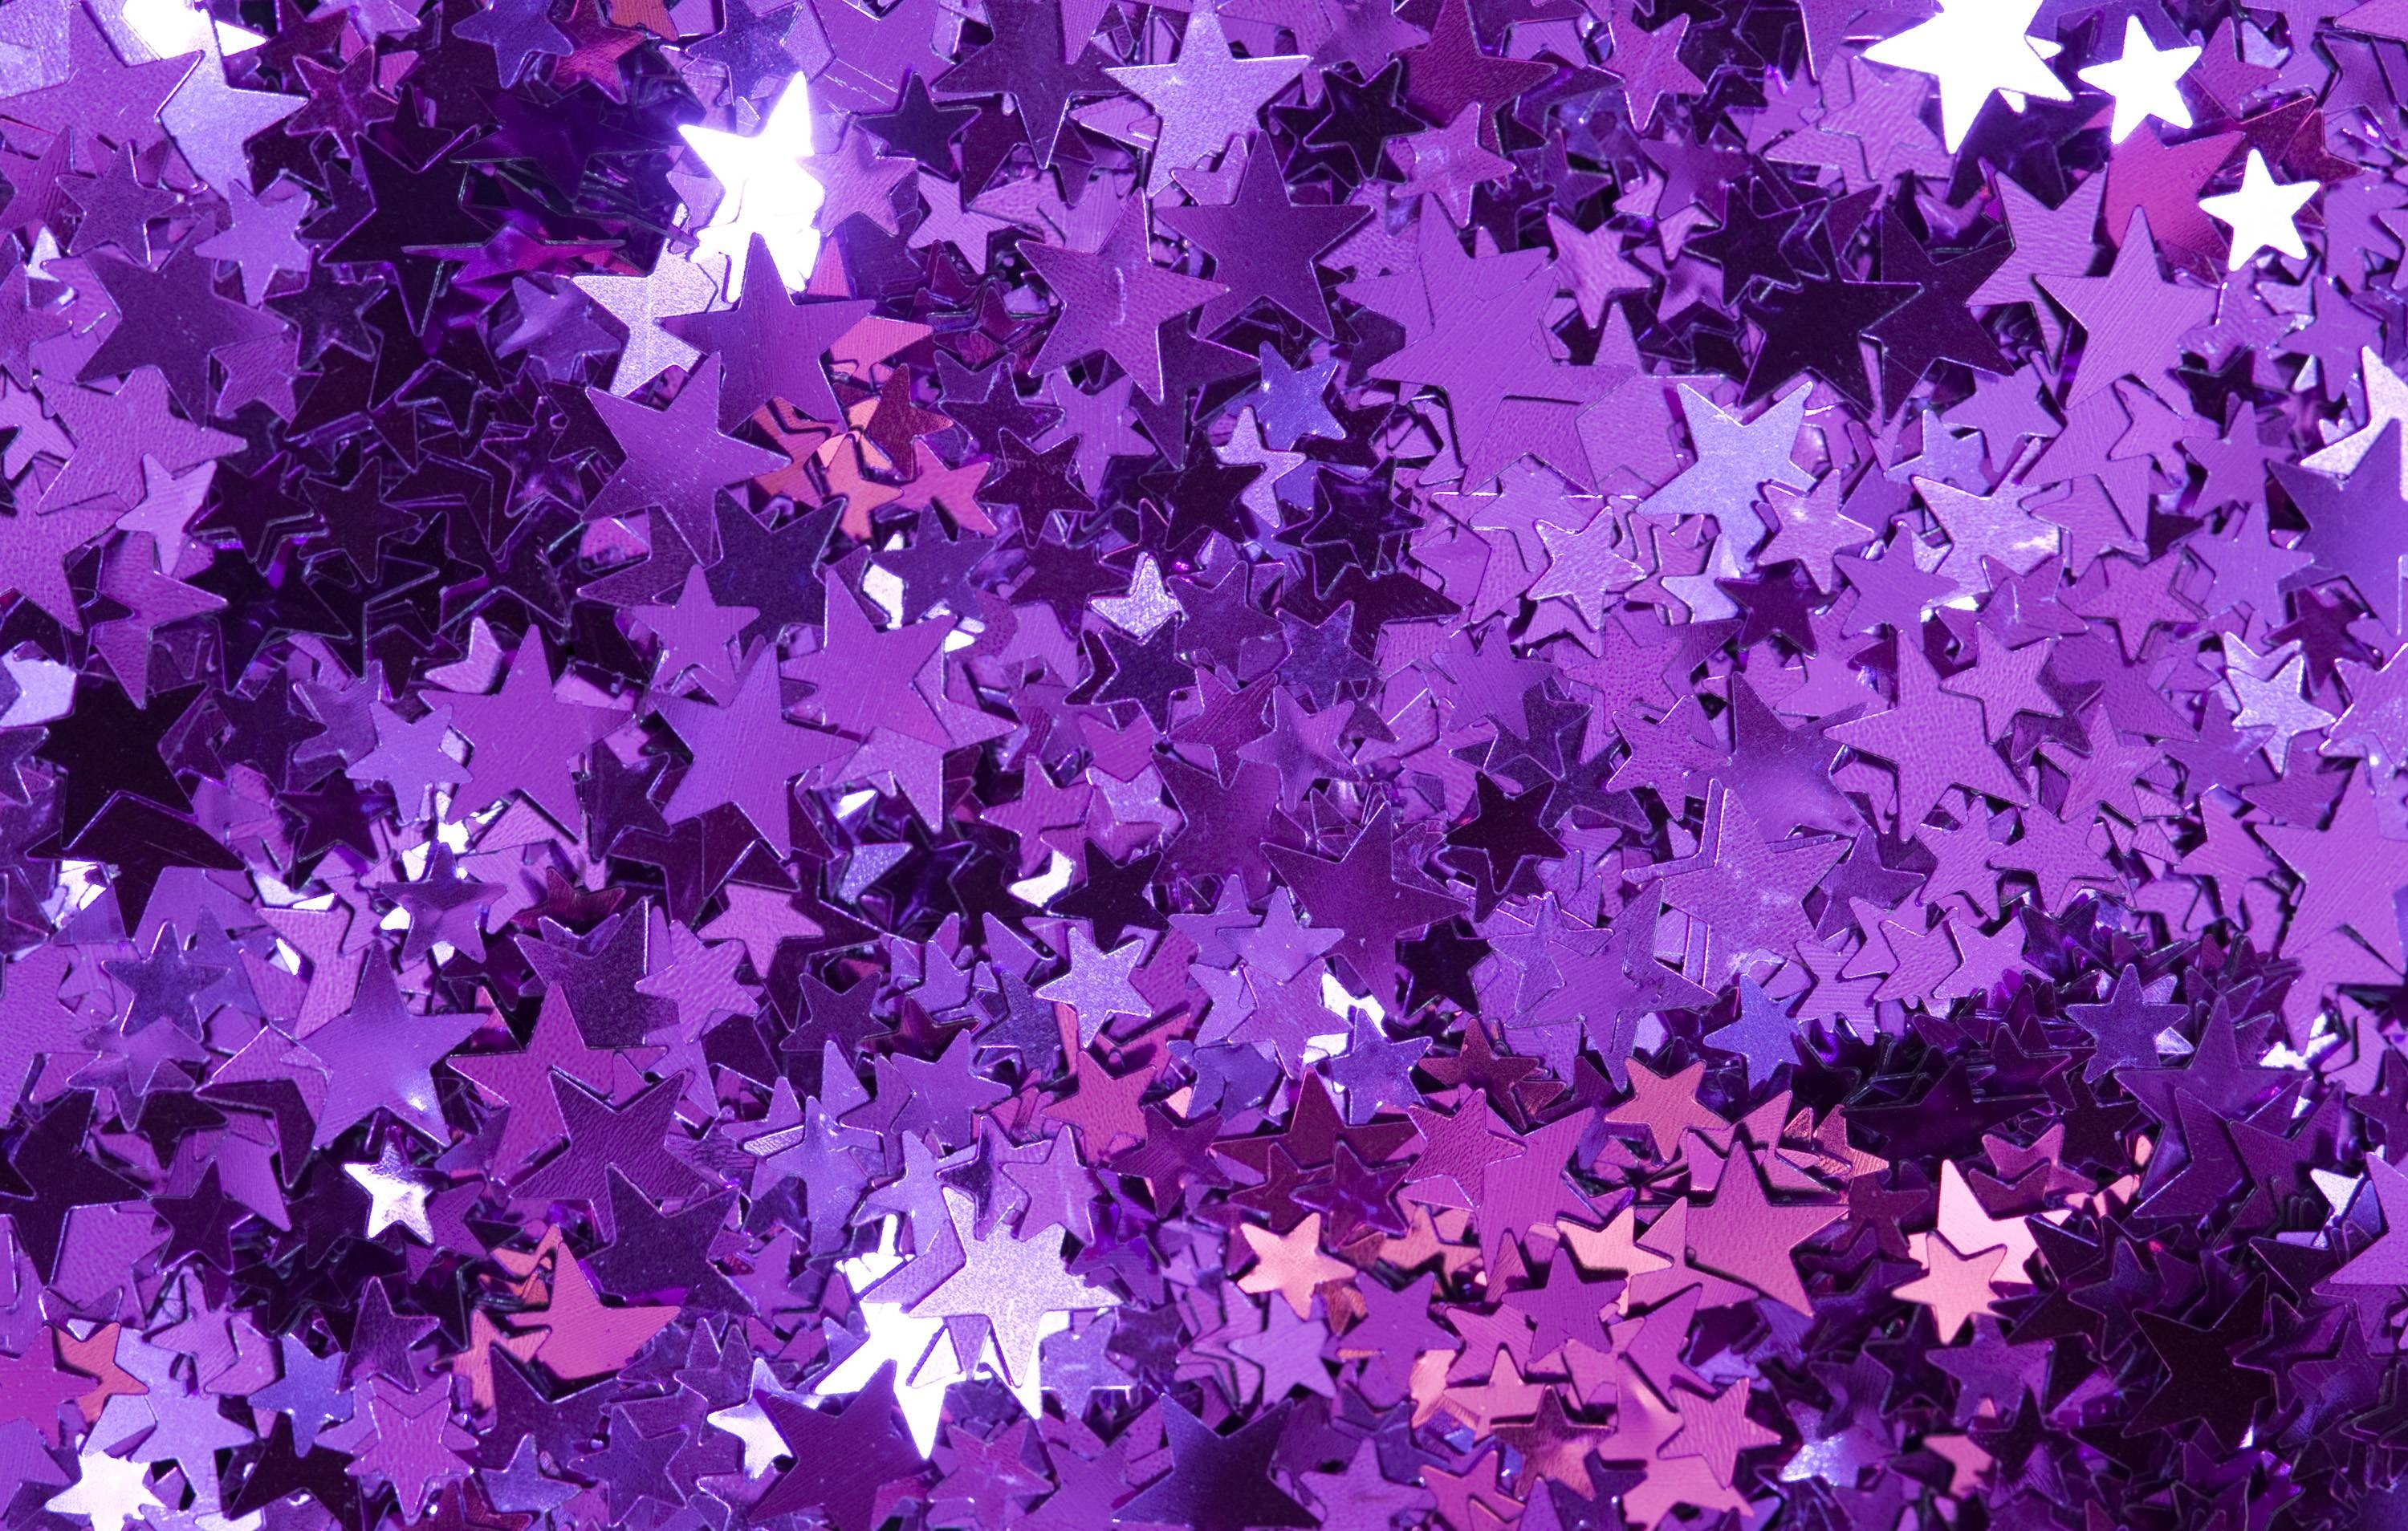 Glitter Background 14 344427 High Definition Wallpapers  wallalay.